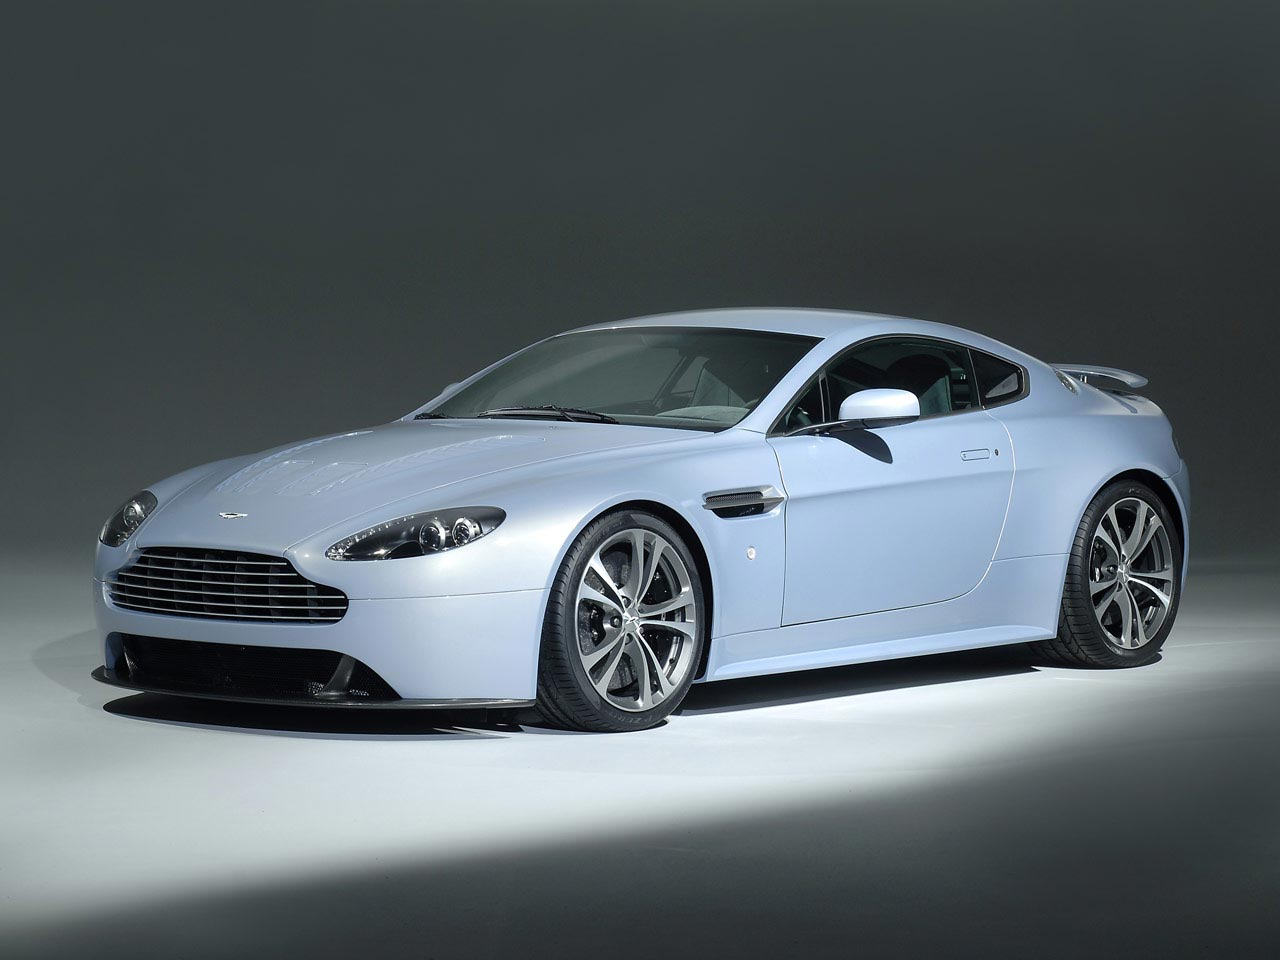 Aston Martin V12 Vantage Carbon Edition Car